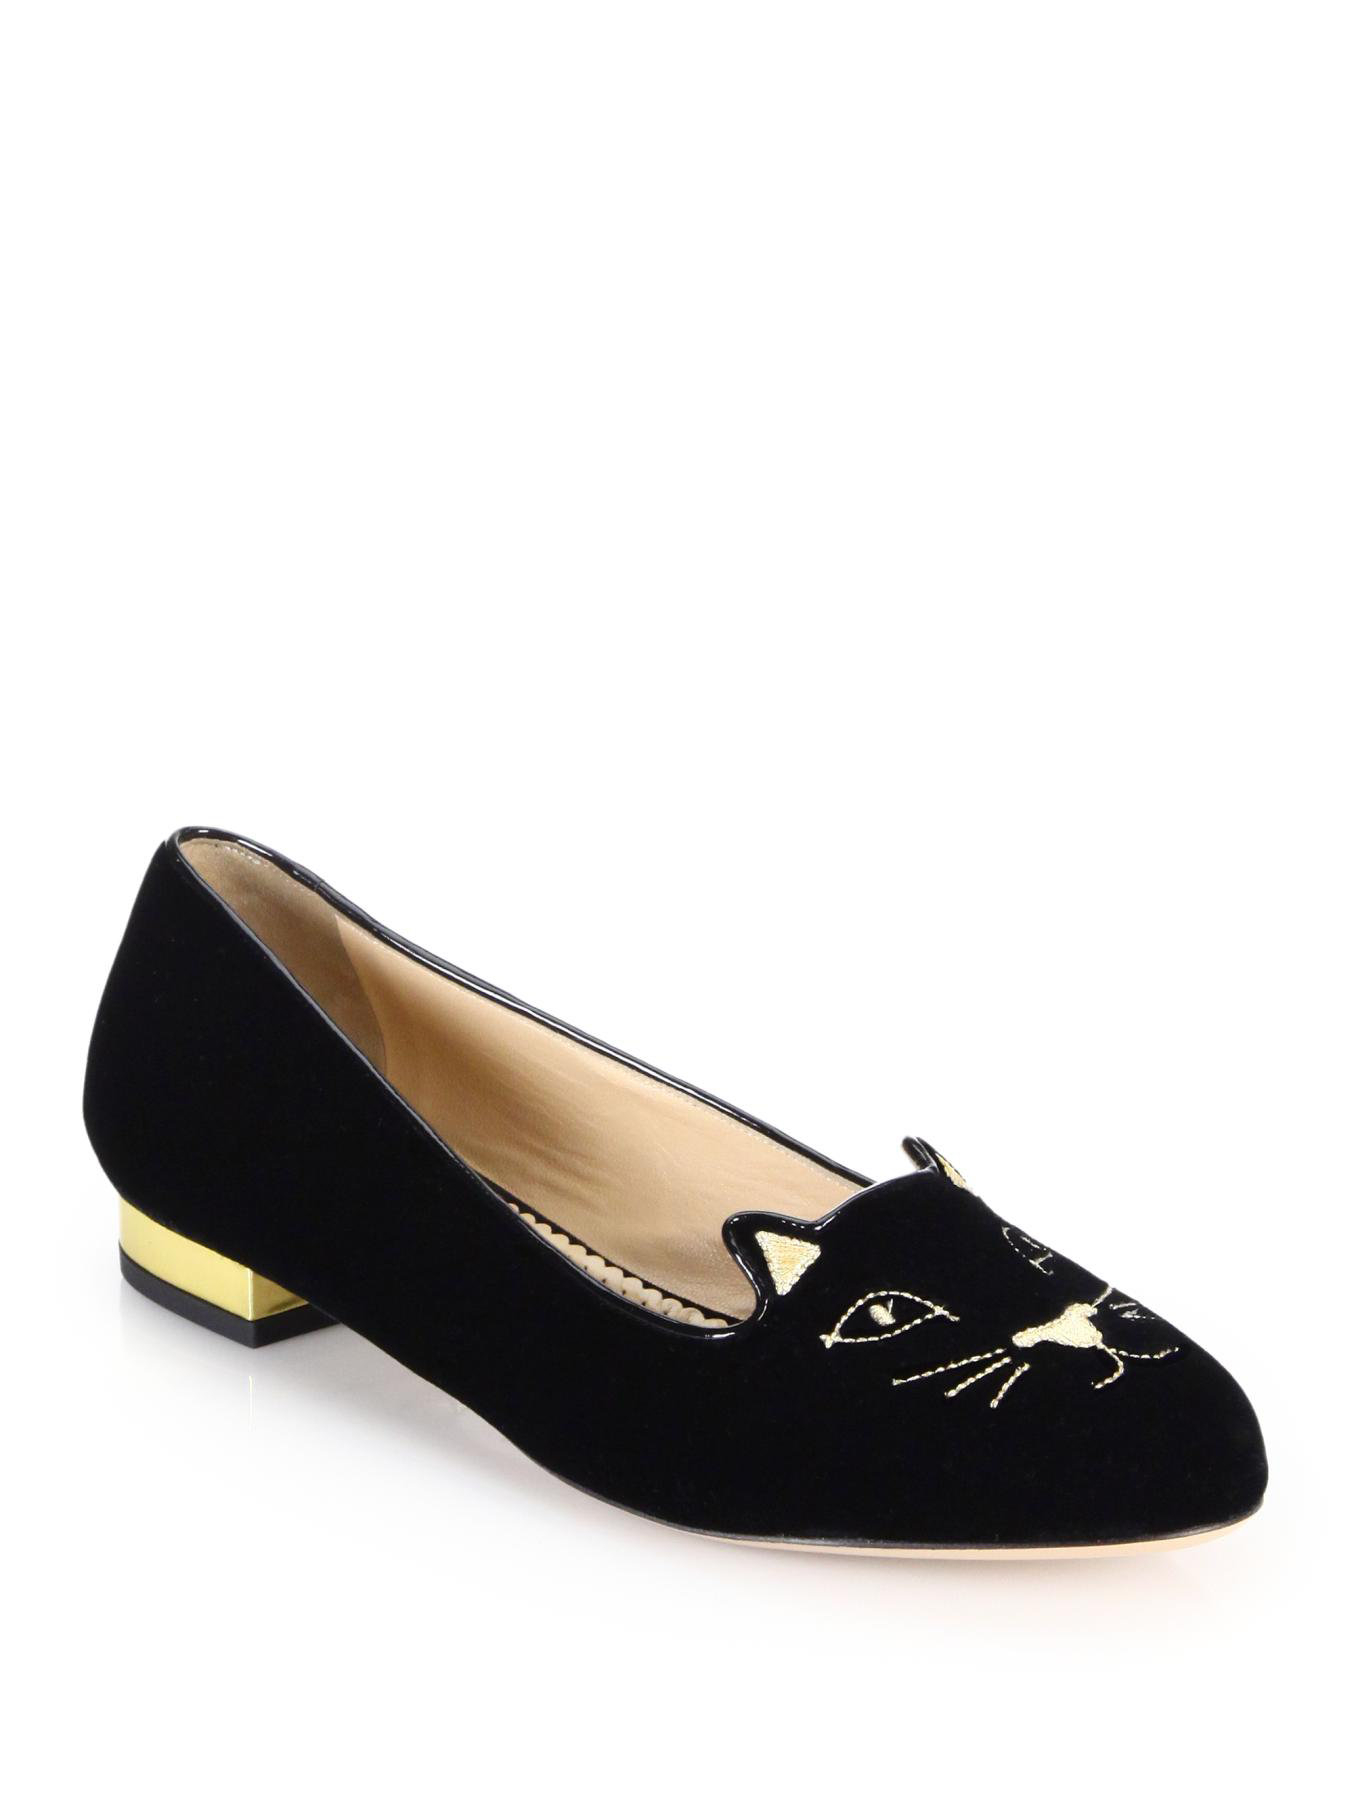 Charlotte Olympia Cat Shoes Heels